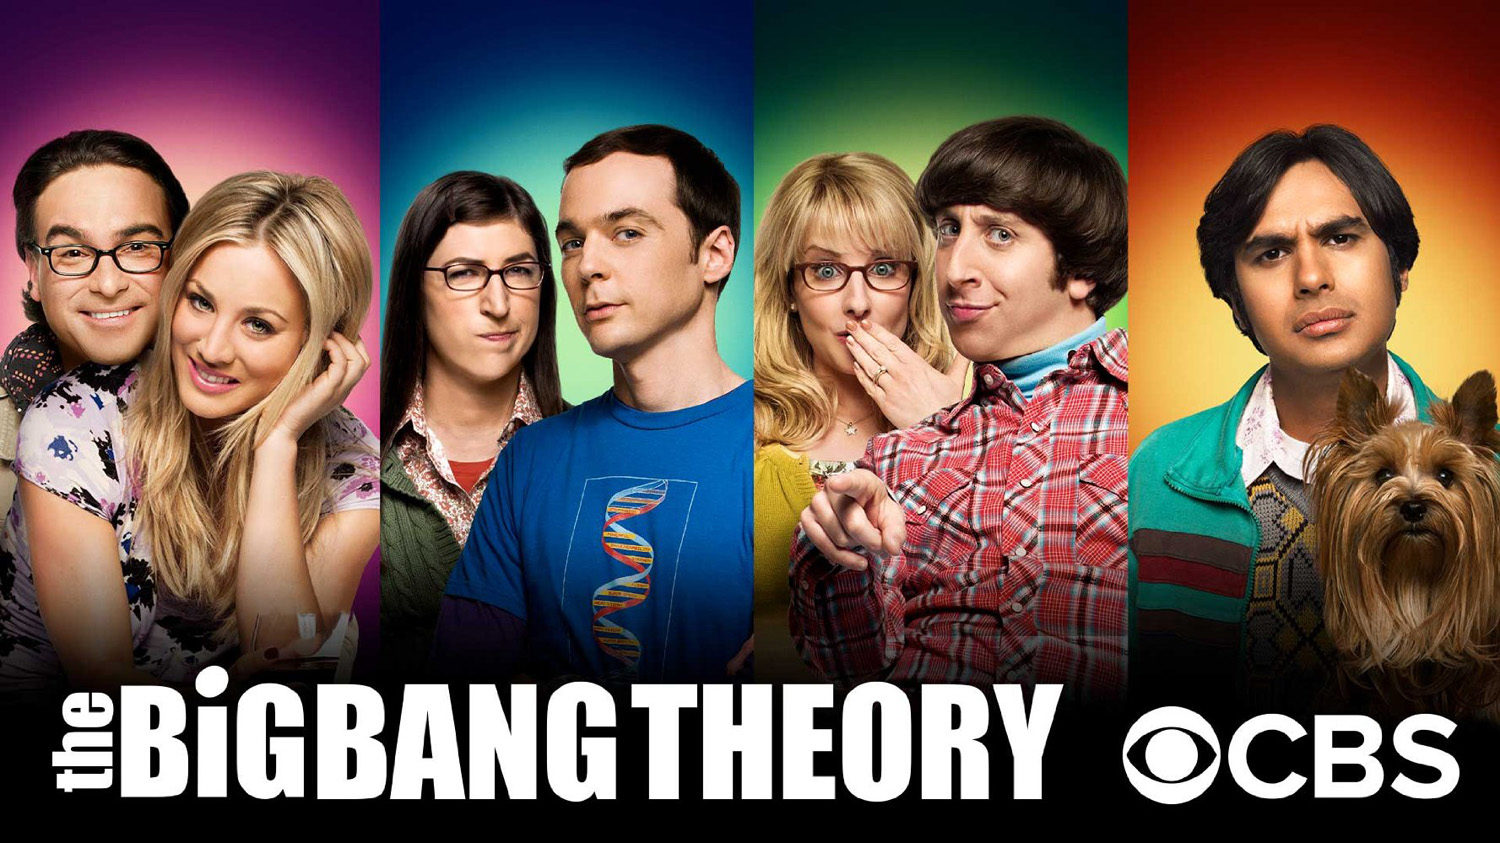 The+Big+Bang+Theory+airs+on+CBS.+Photo+courtesy+of+IMDB.